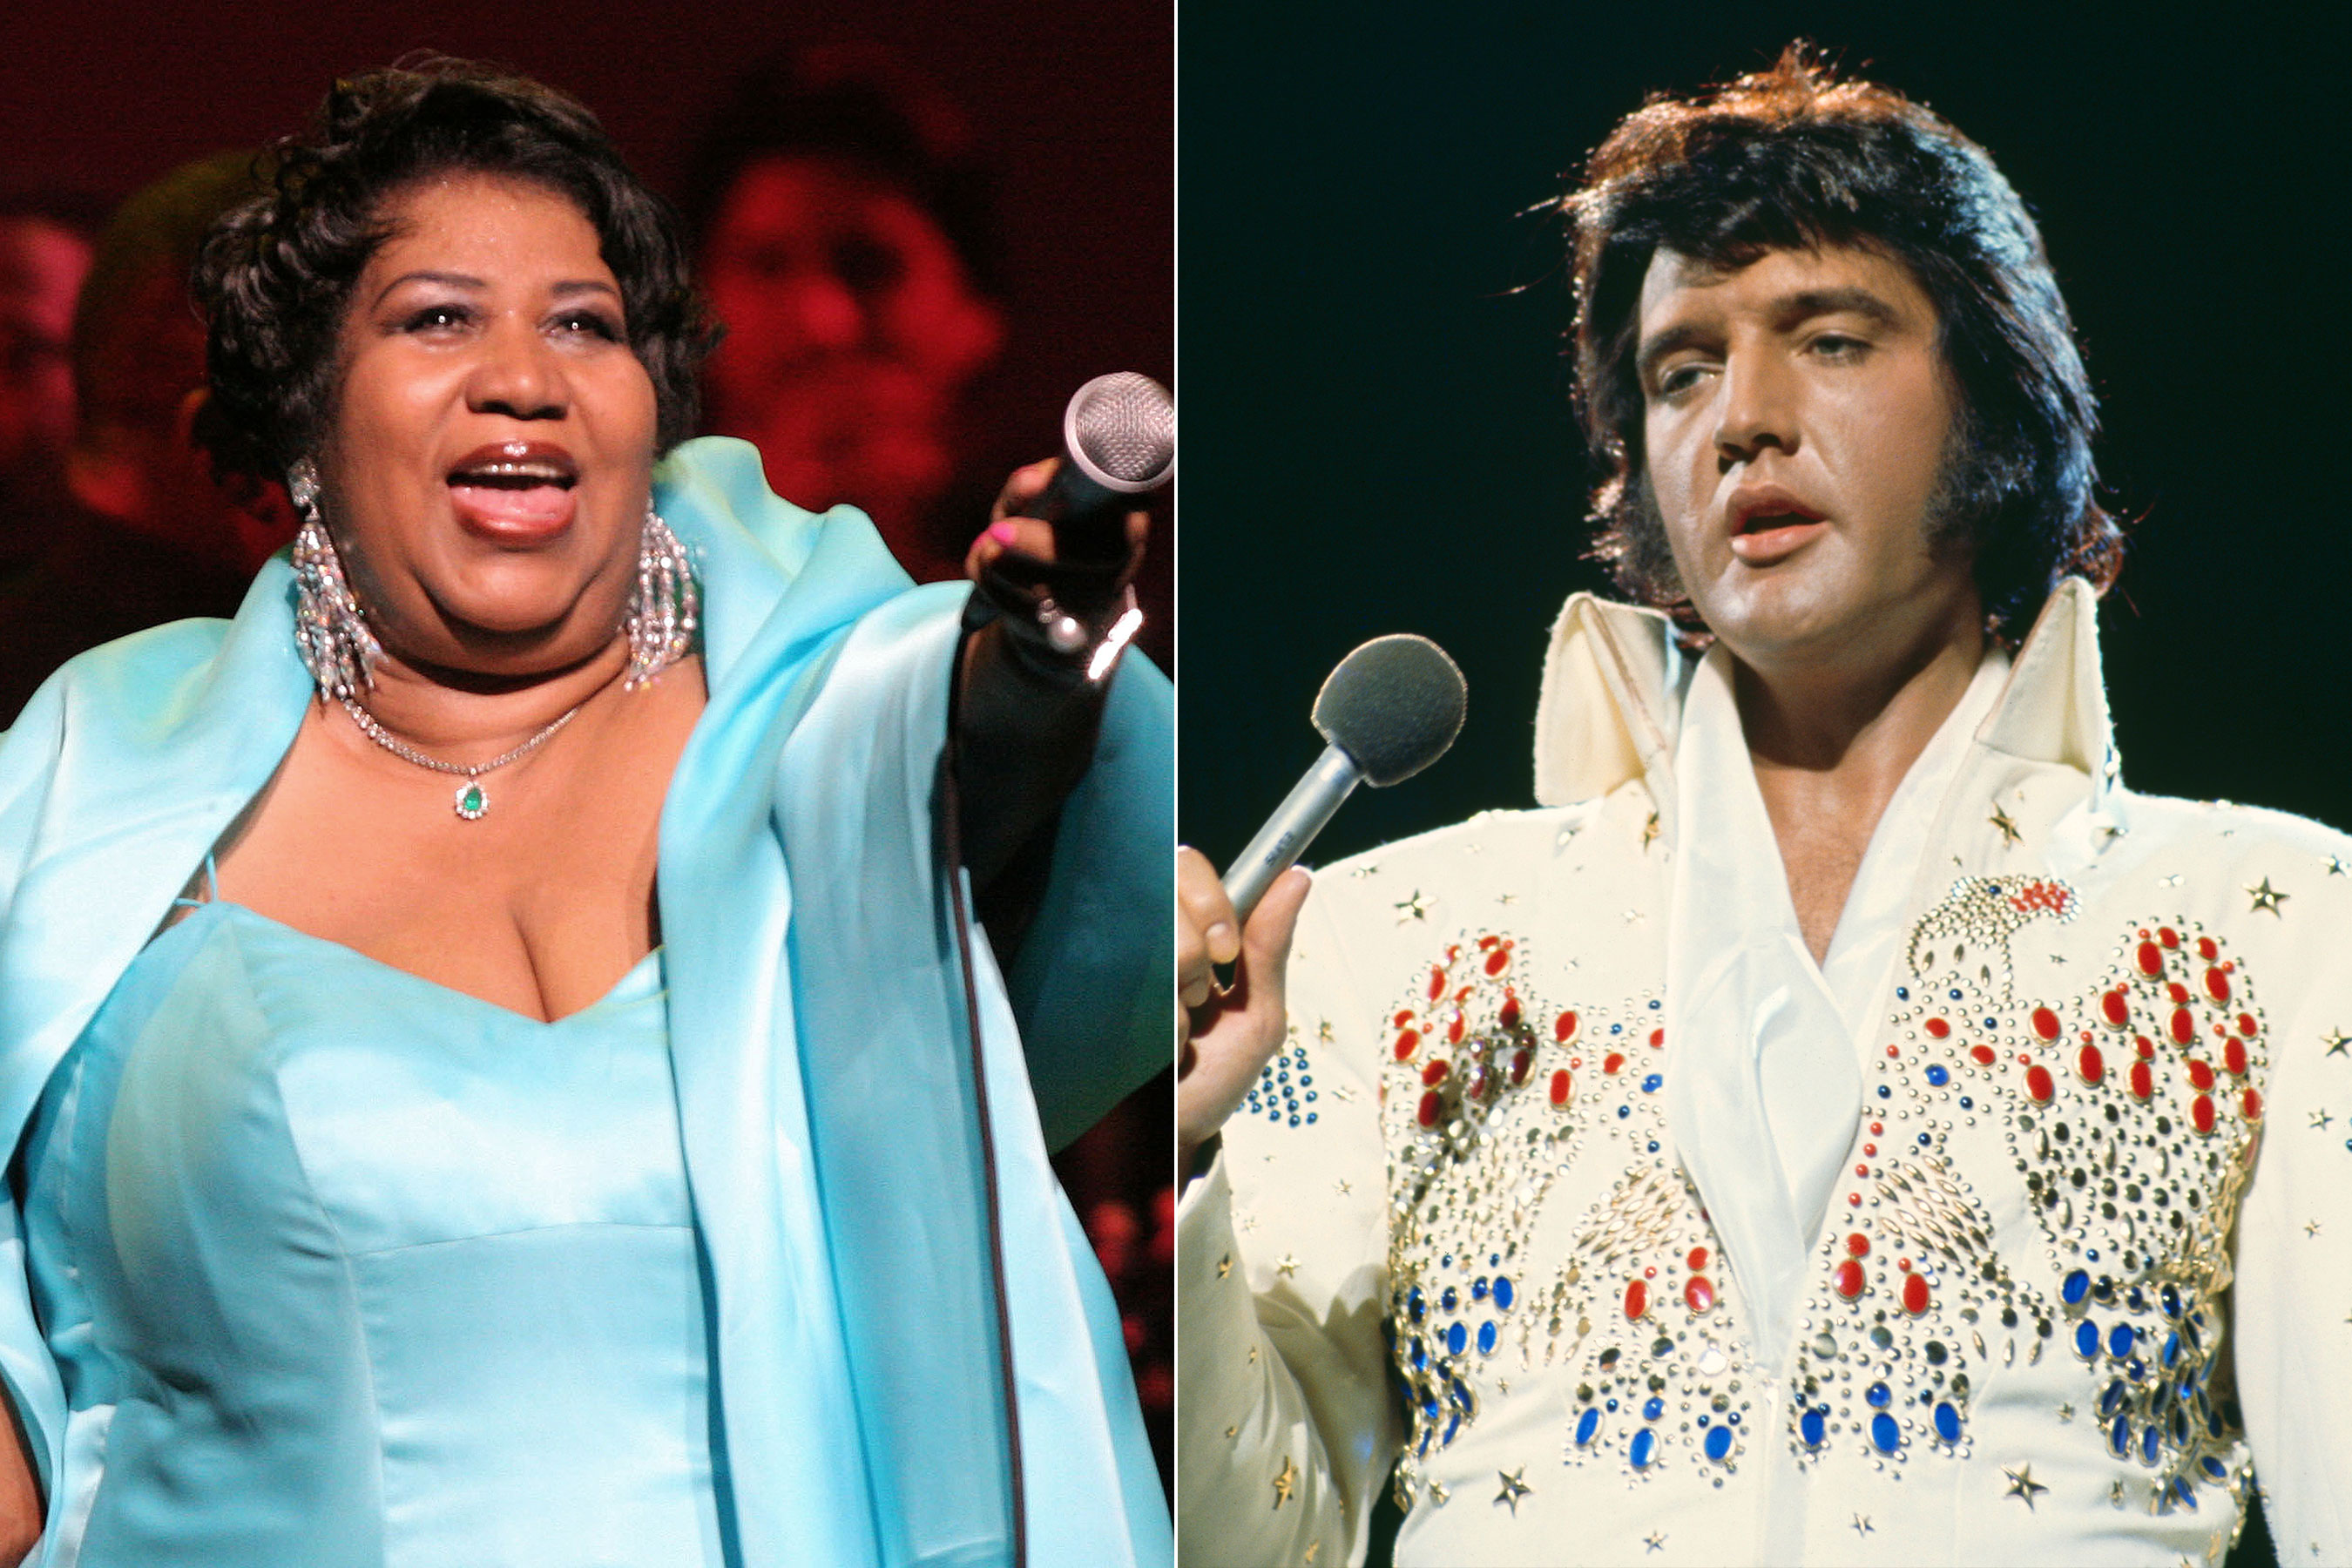 Aretha Franklin Died the Same Day as Elvis Presley